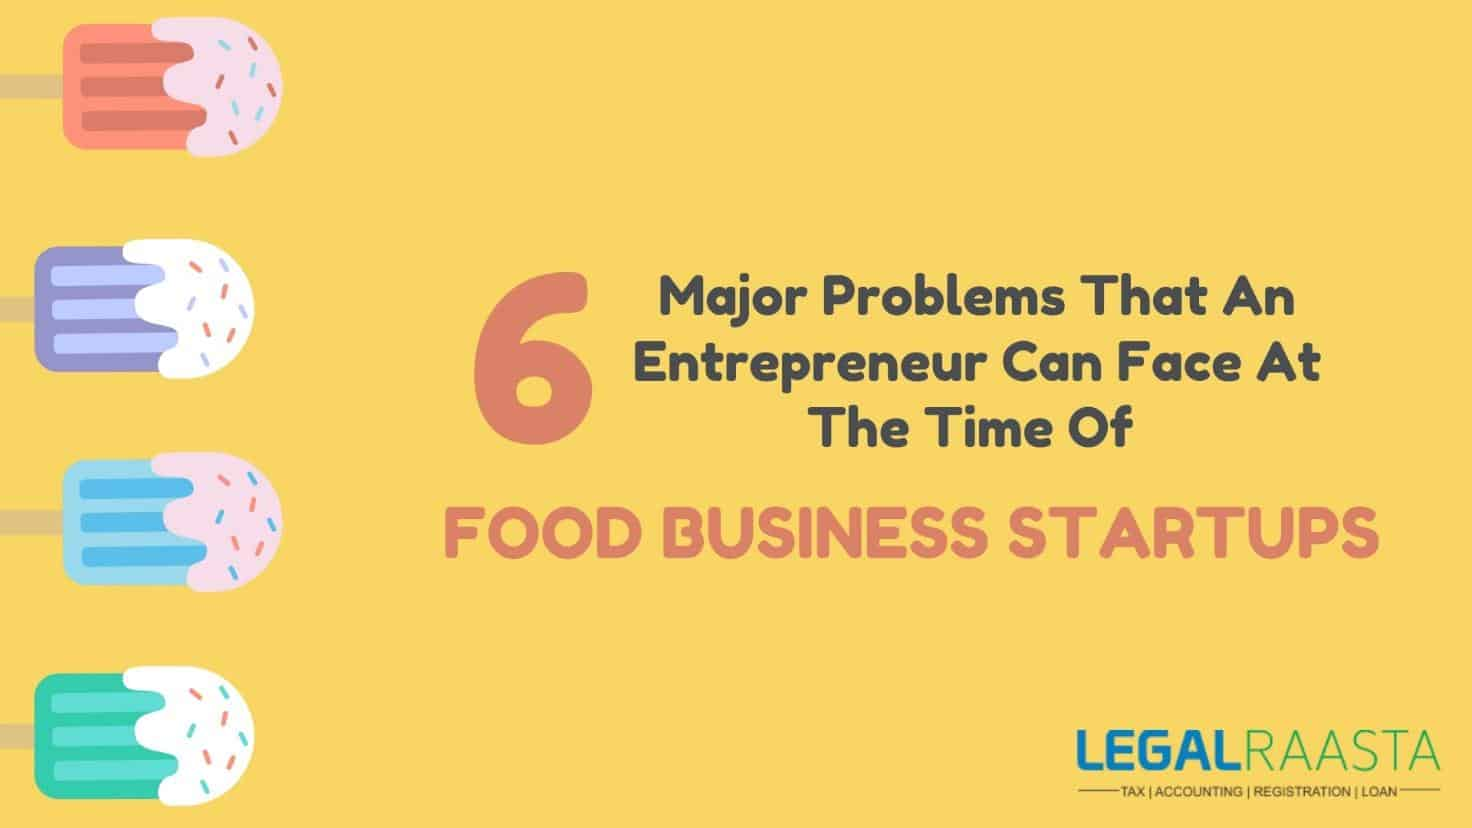 Major Problems Faced During Food Business Startups